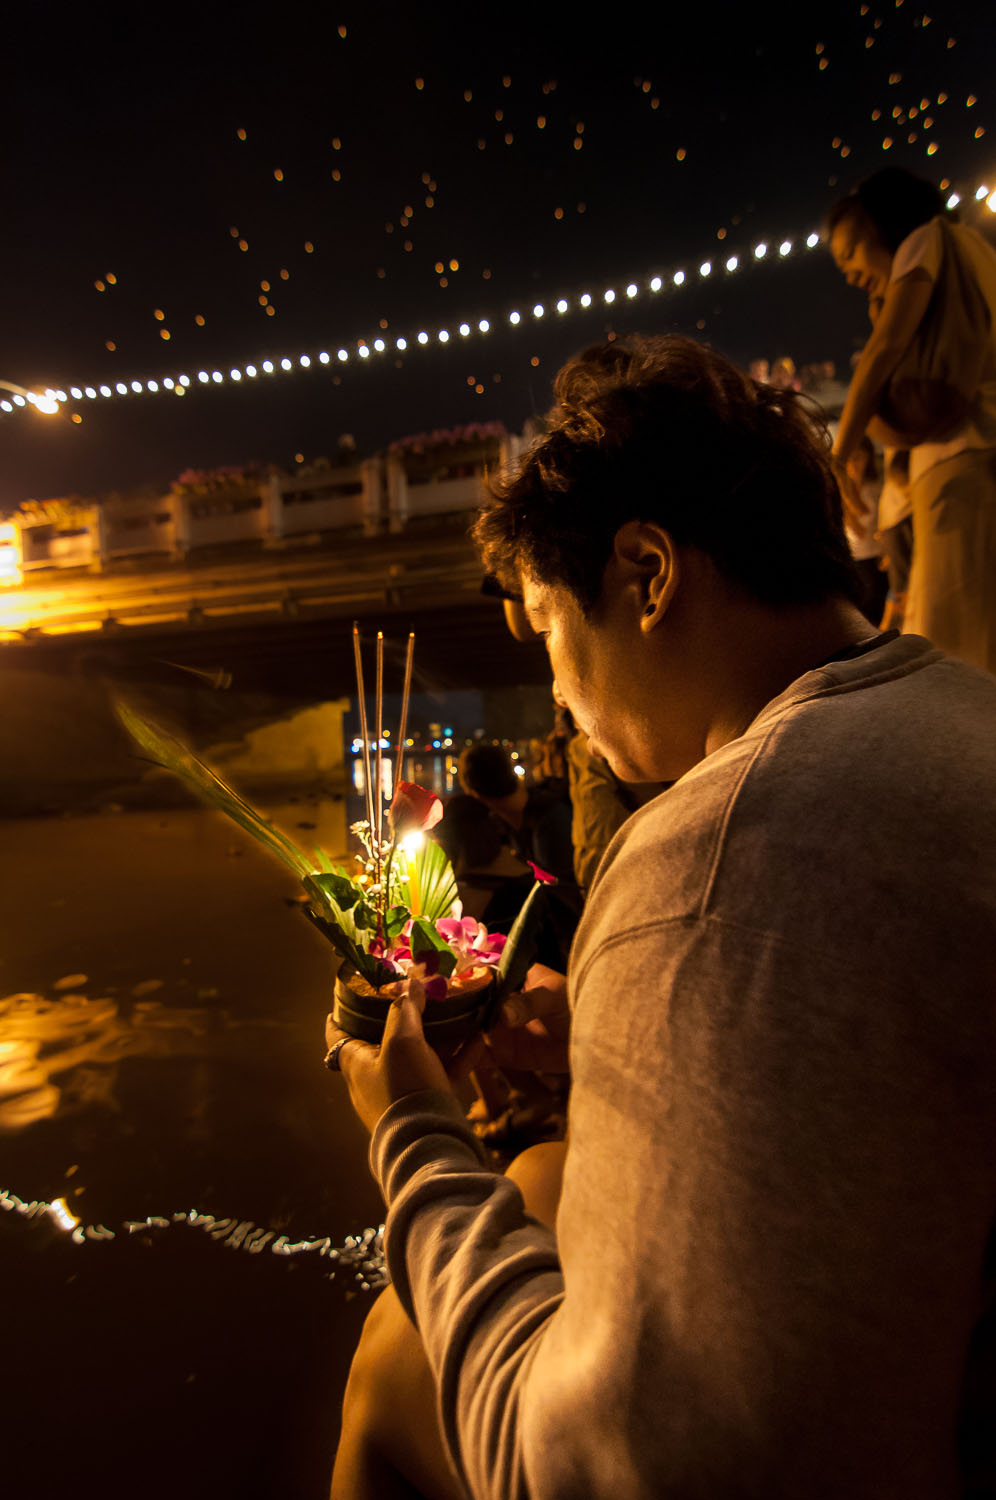 A woman prepares to release the krathong into the river in Chiang Mai, Thailand.